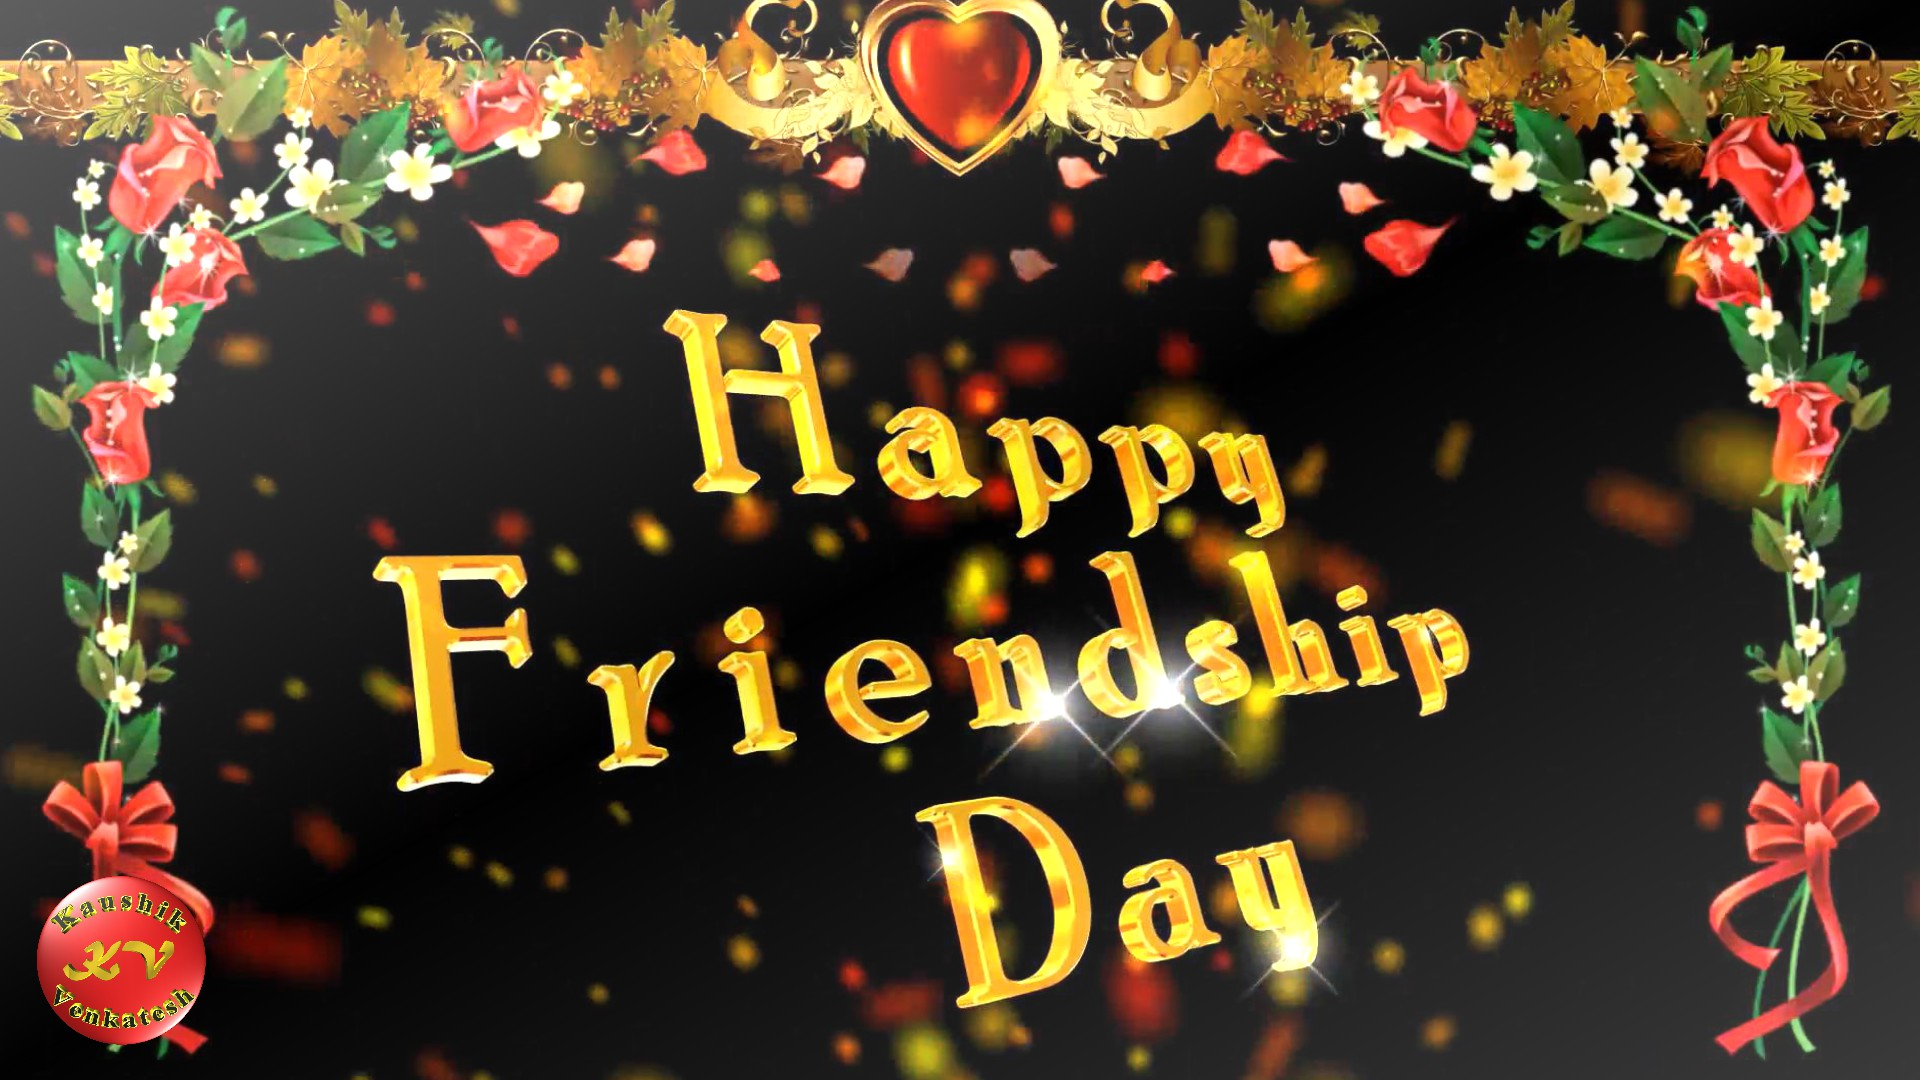 Greetings for the Special event of friends